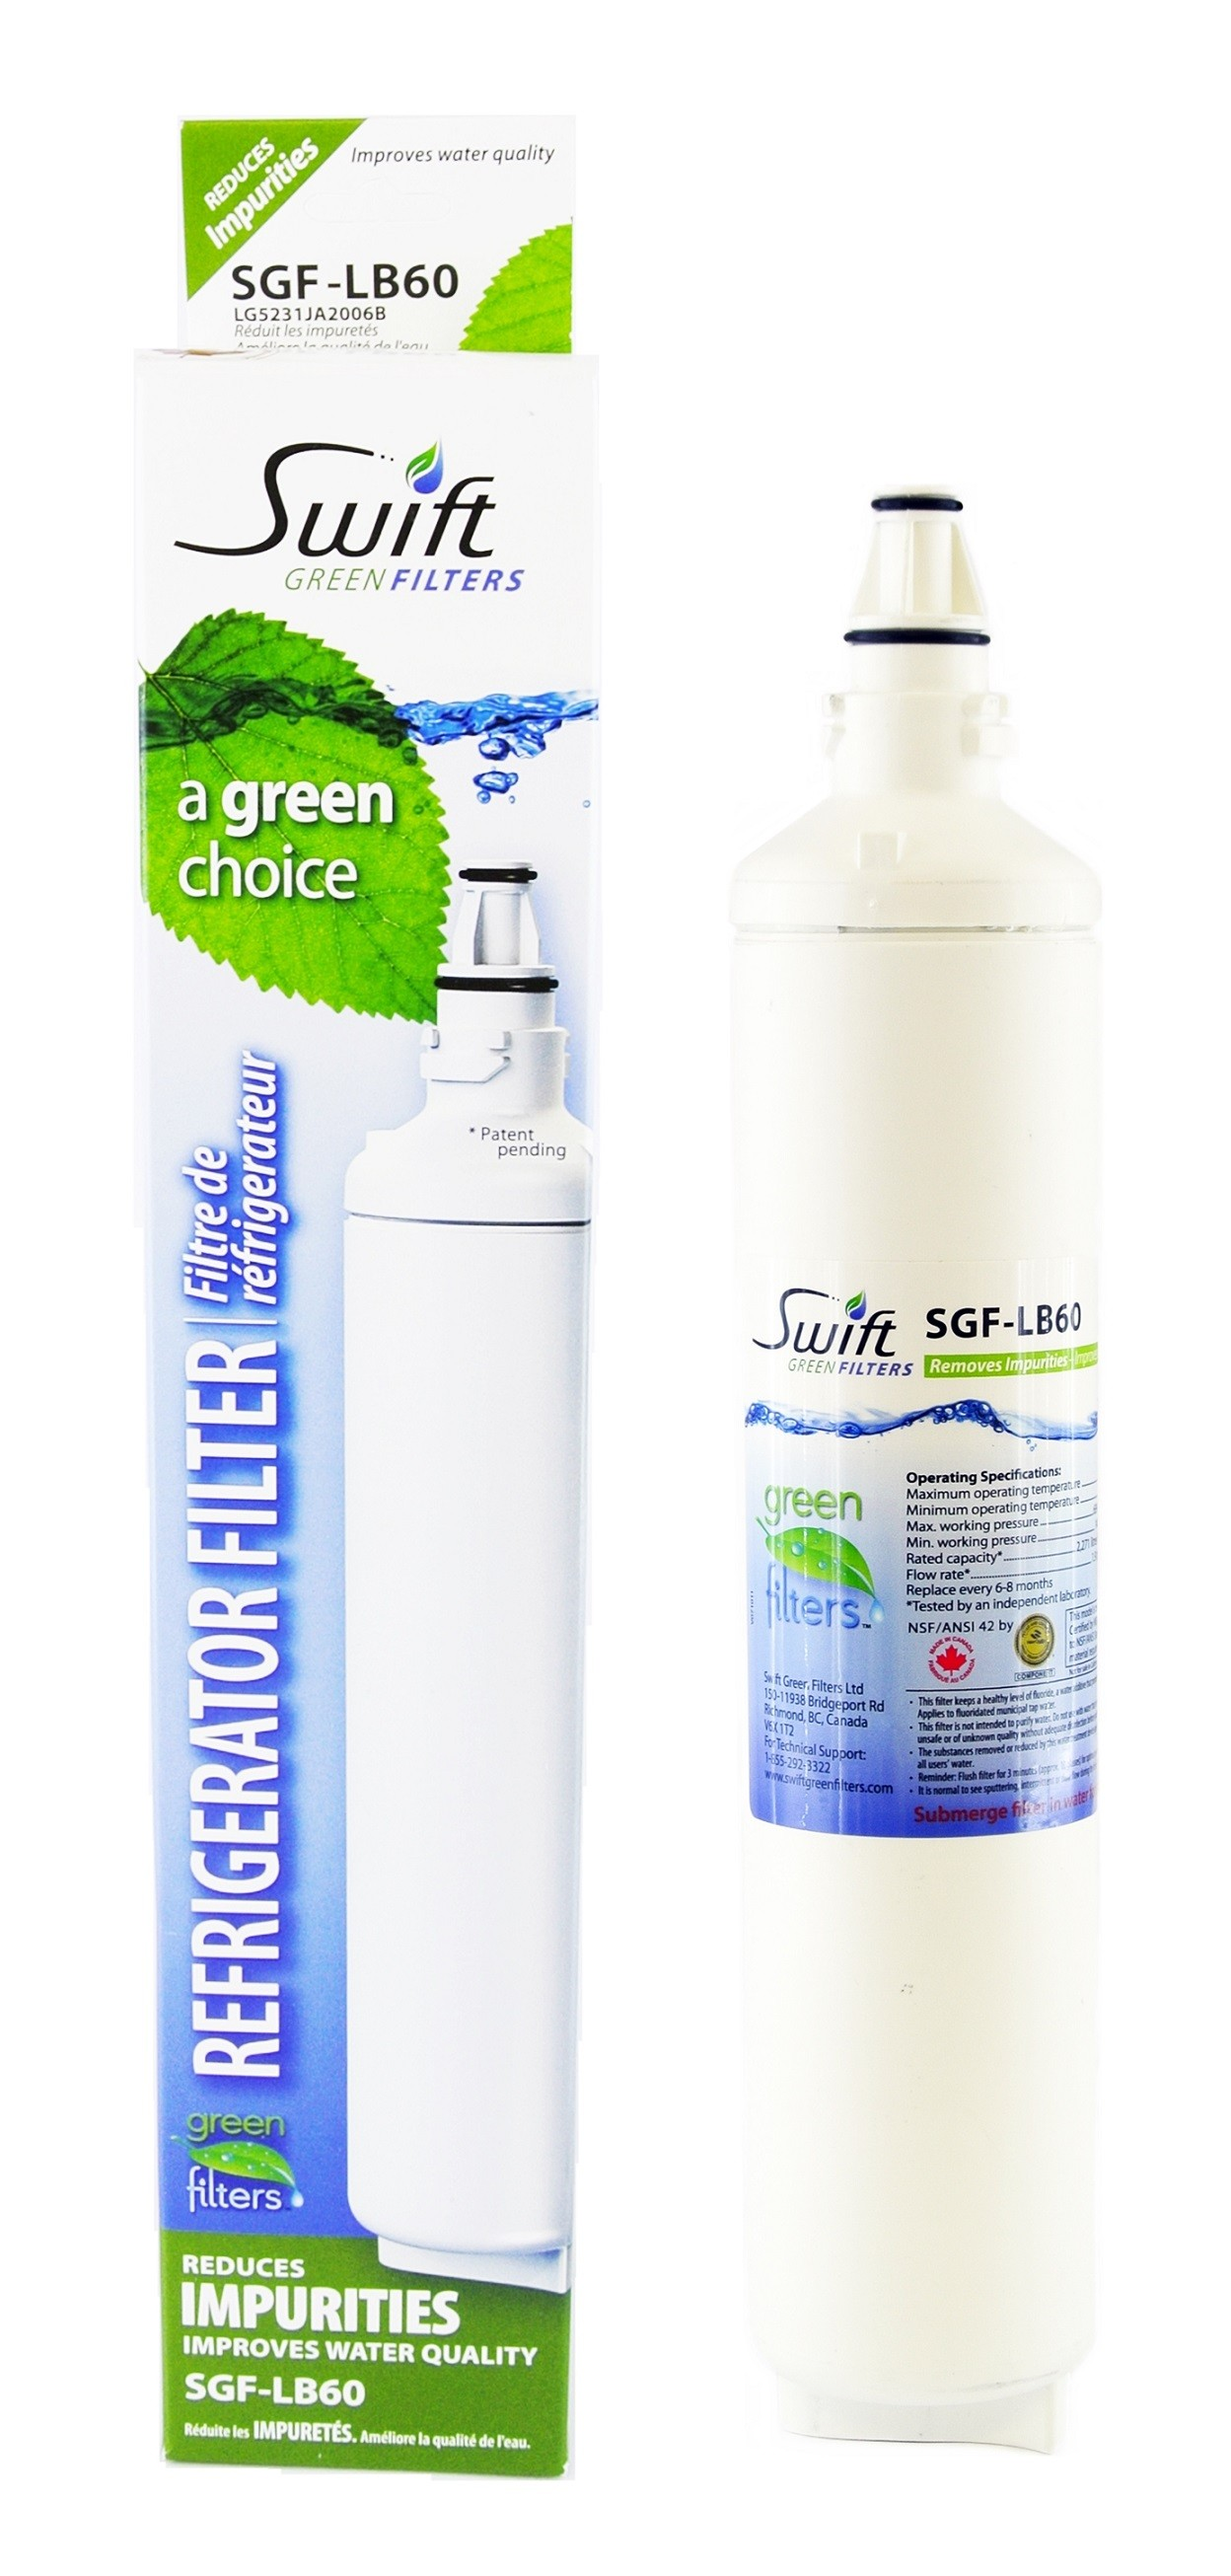 Swift Green LT600P Fridge water filter compatible with LG LT600P